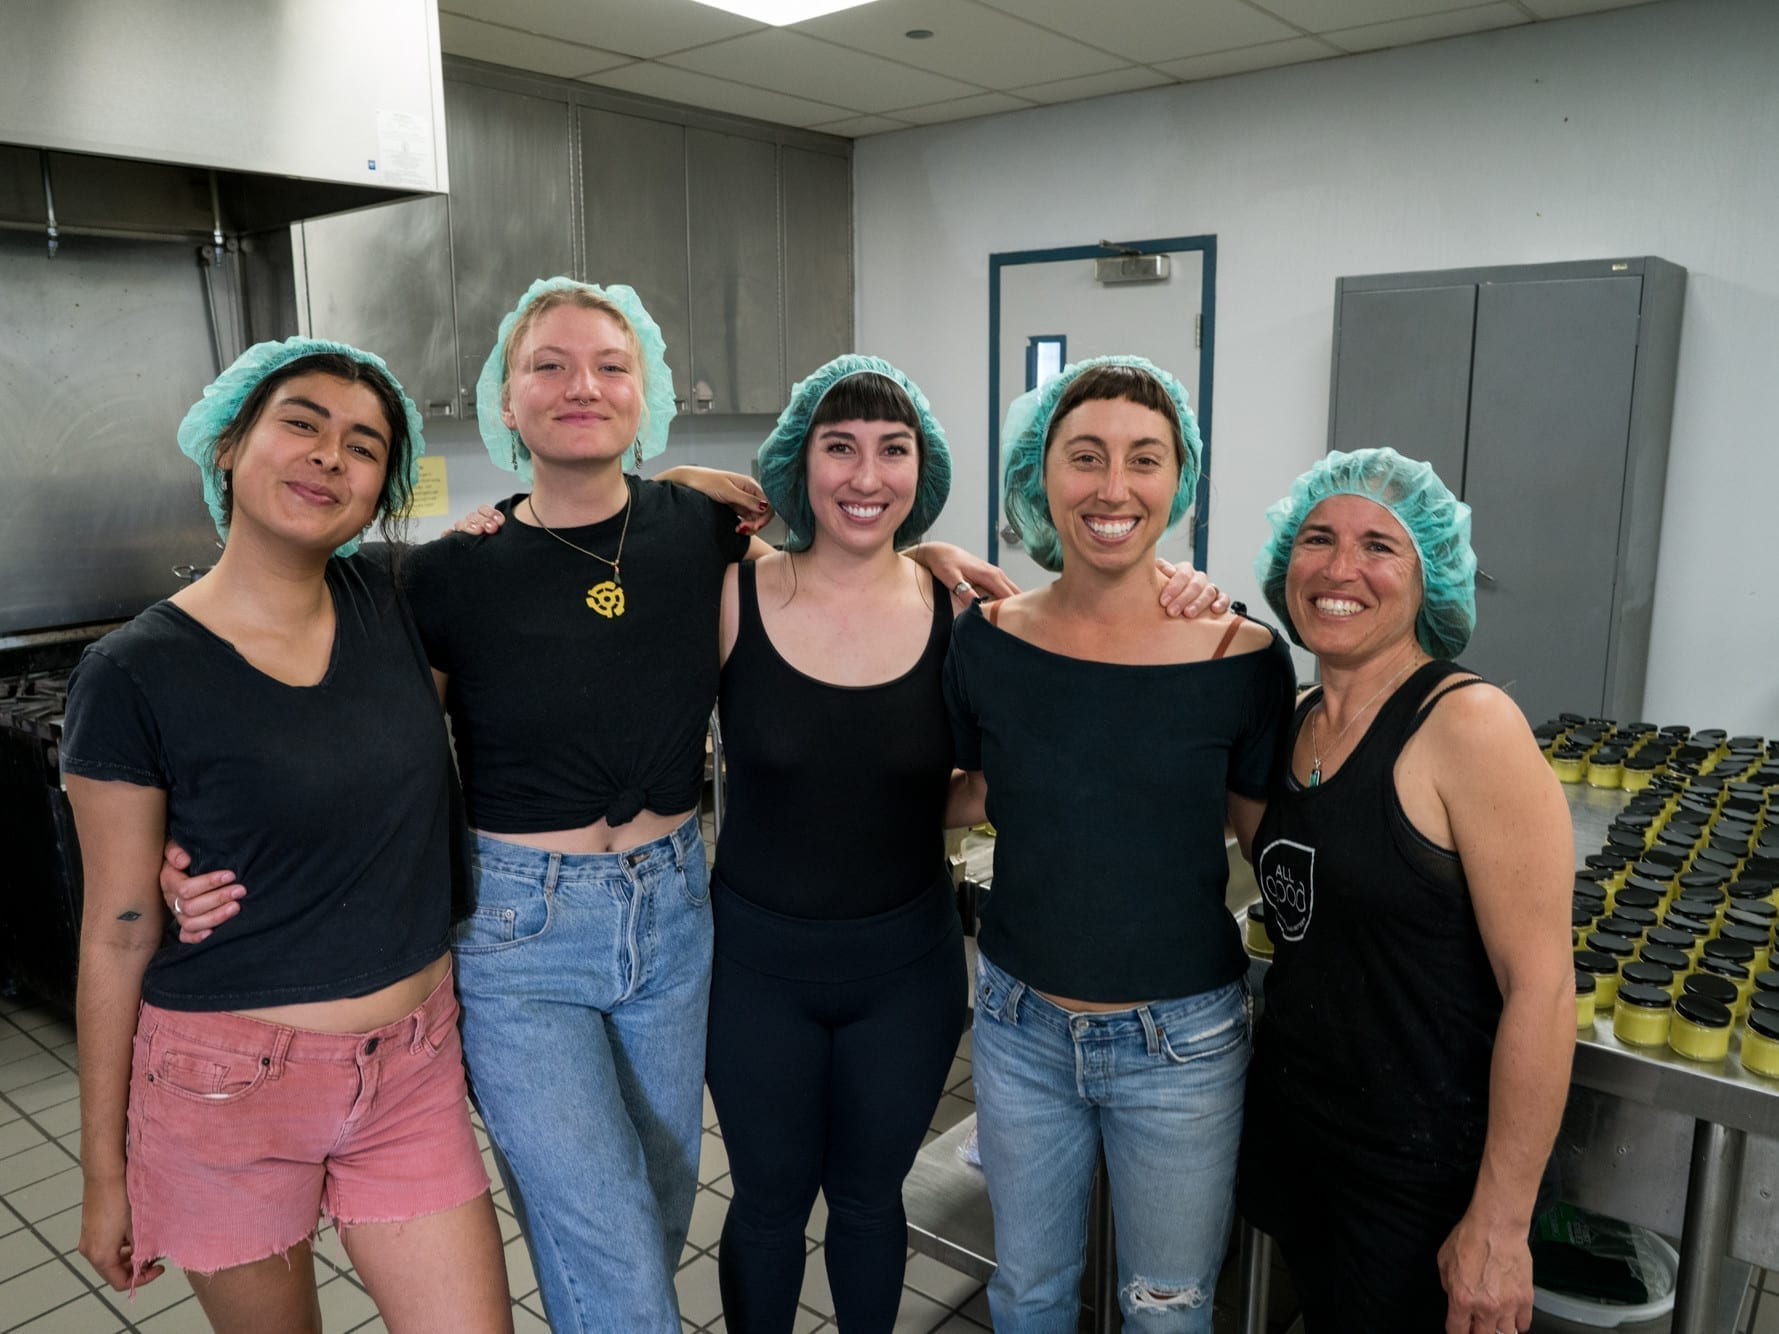 The All Good Goop Goddesses with hair nets and black t-shirts in the company kitchen stand side by side smiling.